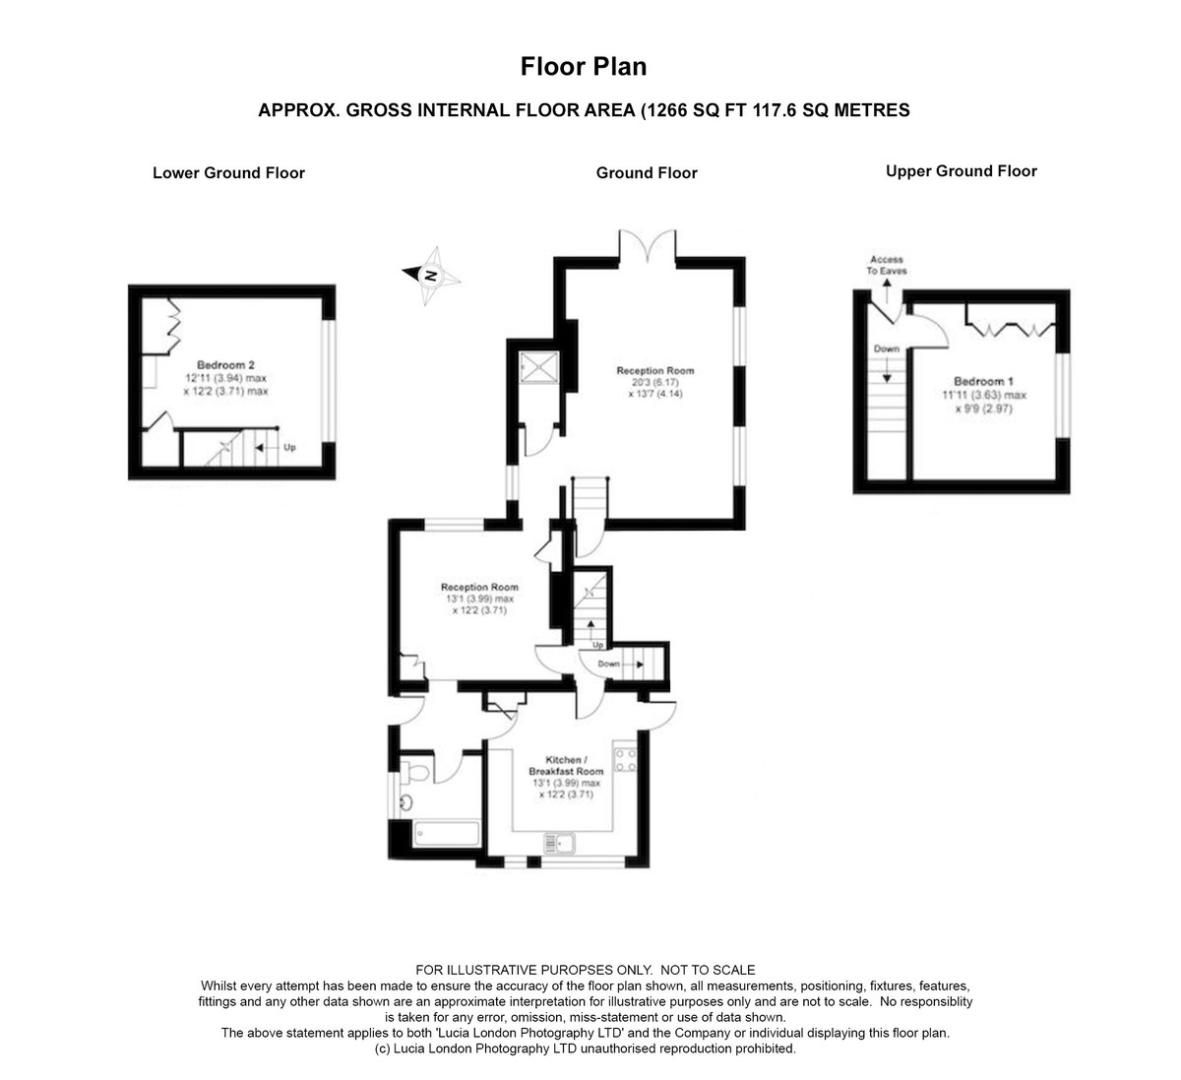 2 bed house for sale in Rectory Lane, Sidcup, DA14 - Property Floorplan